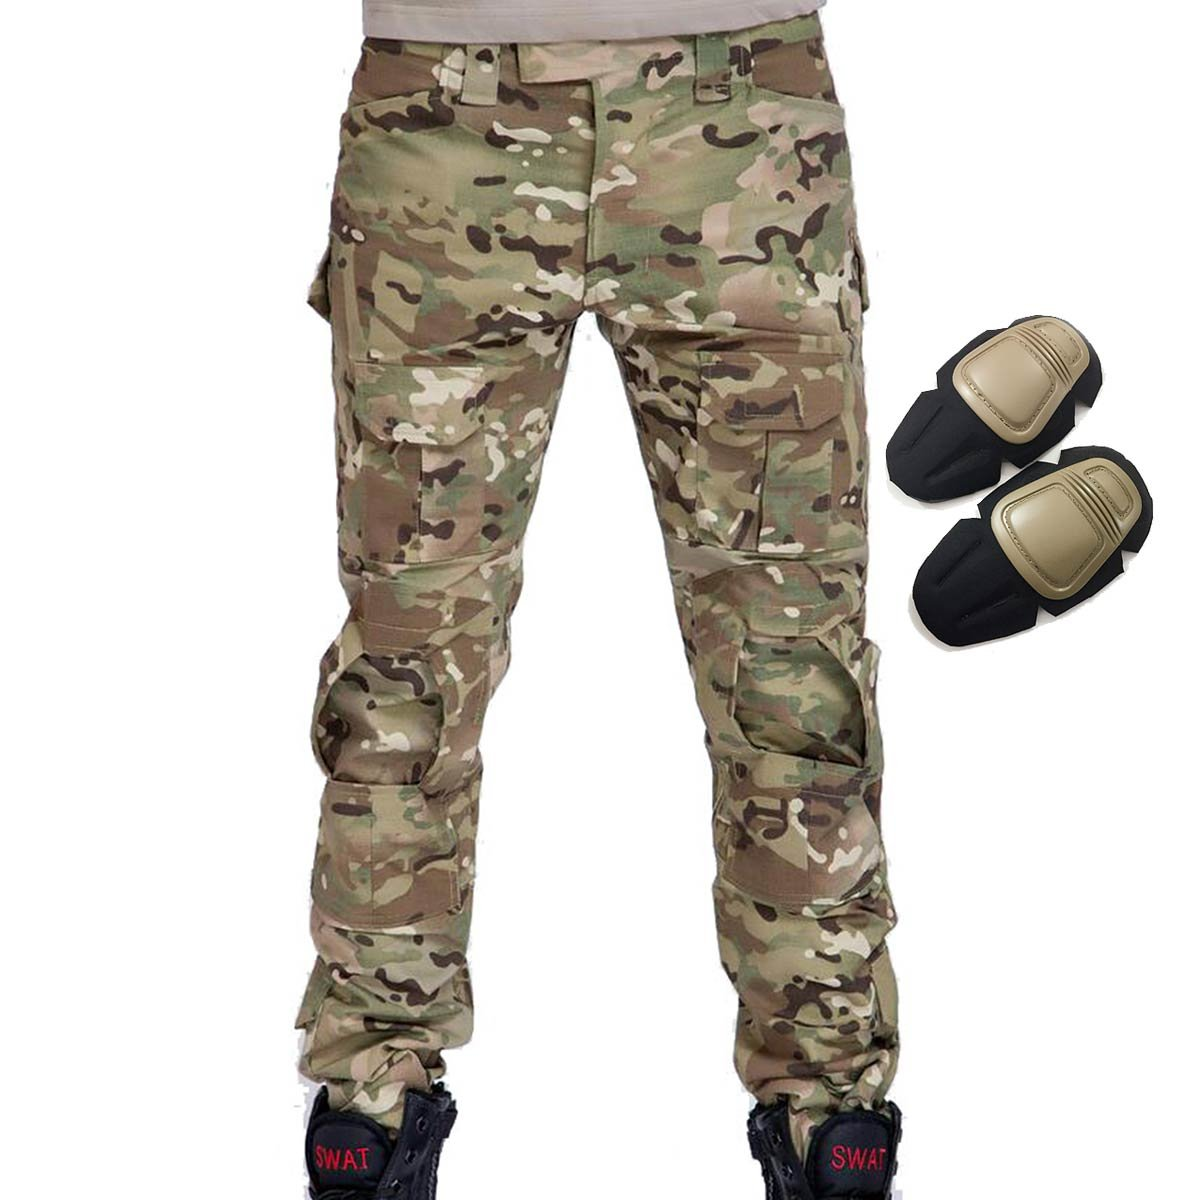 Military Army Tactical Airsoft Paintball Shooting Pants Combat Men Pants with Knee Pads Multicam MC (S)